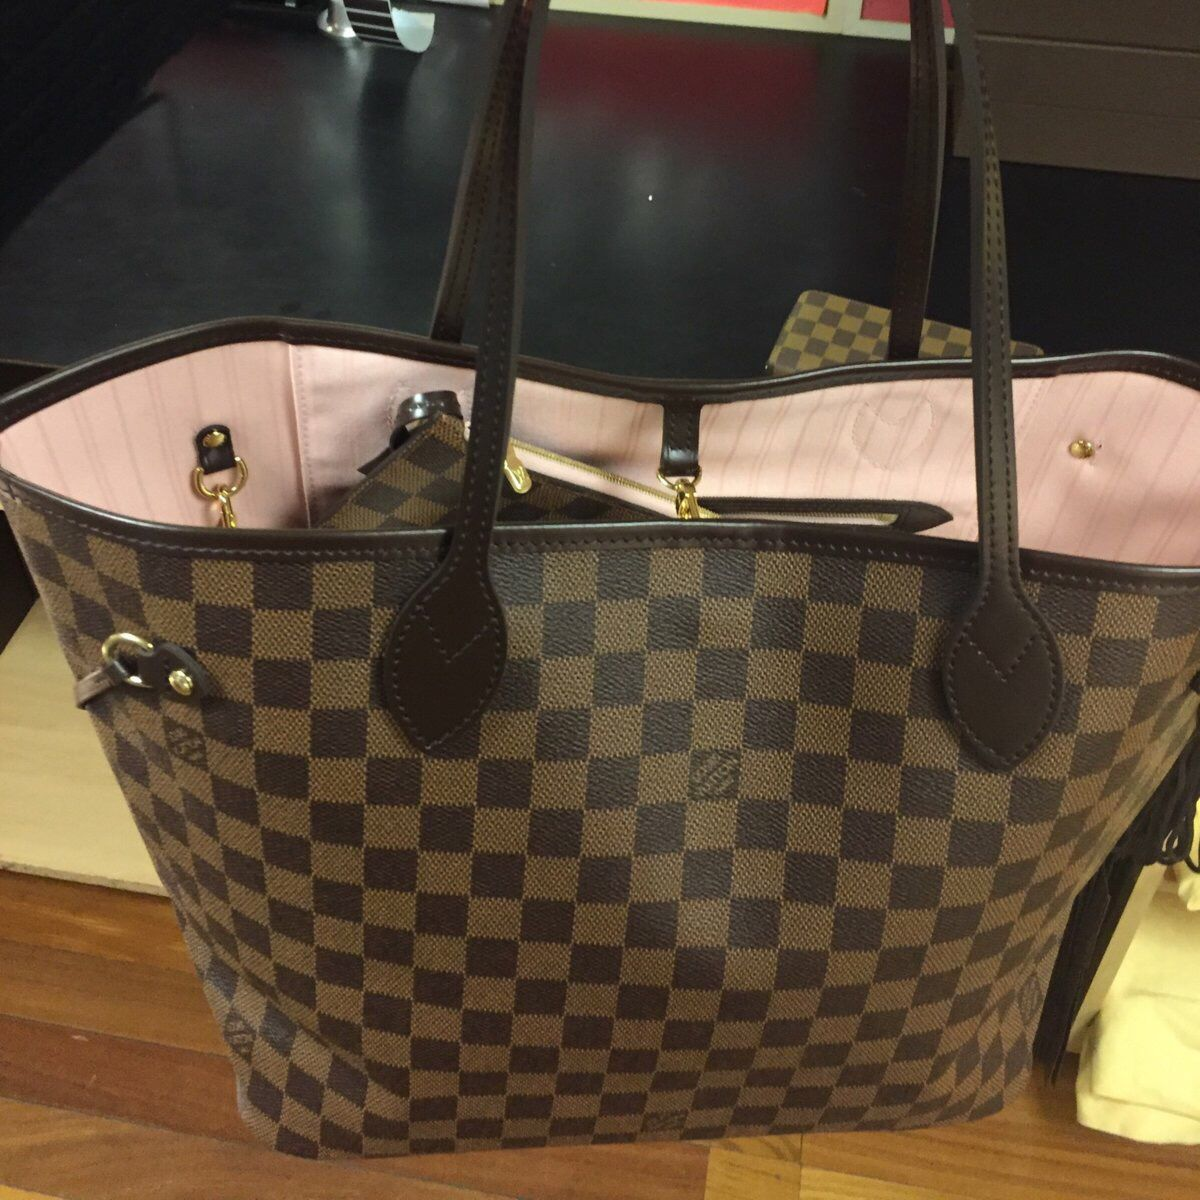 Louis Vuitton Neverfull Mm In Damier Ebene With Rose Ballerine Interior